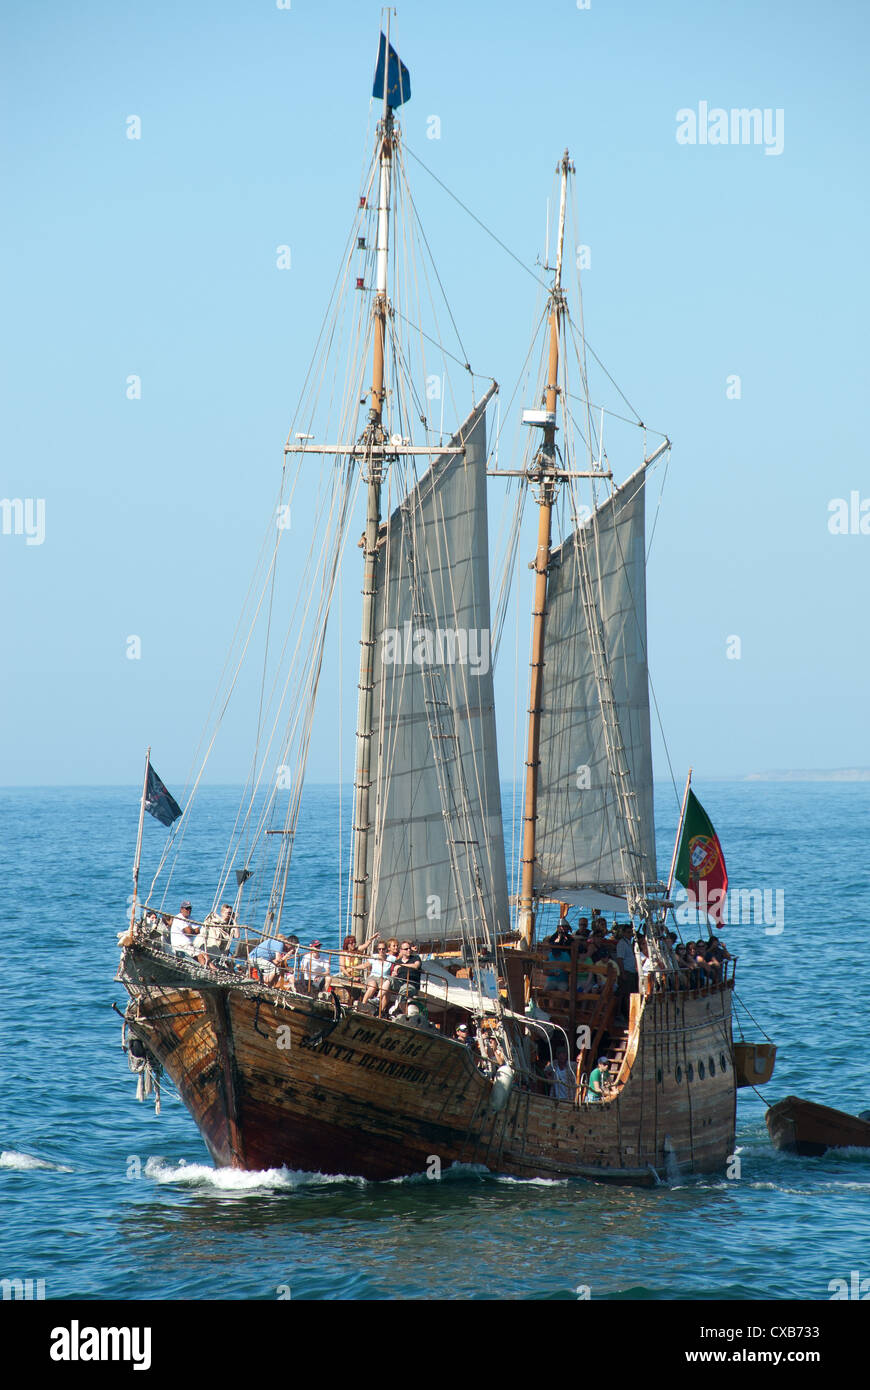 ALGARVE PORTUGAL Holidaymakers Enjoying A Pirate Ship Cruise - Pirate ship cruise